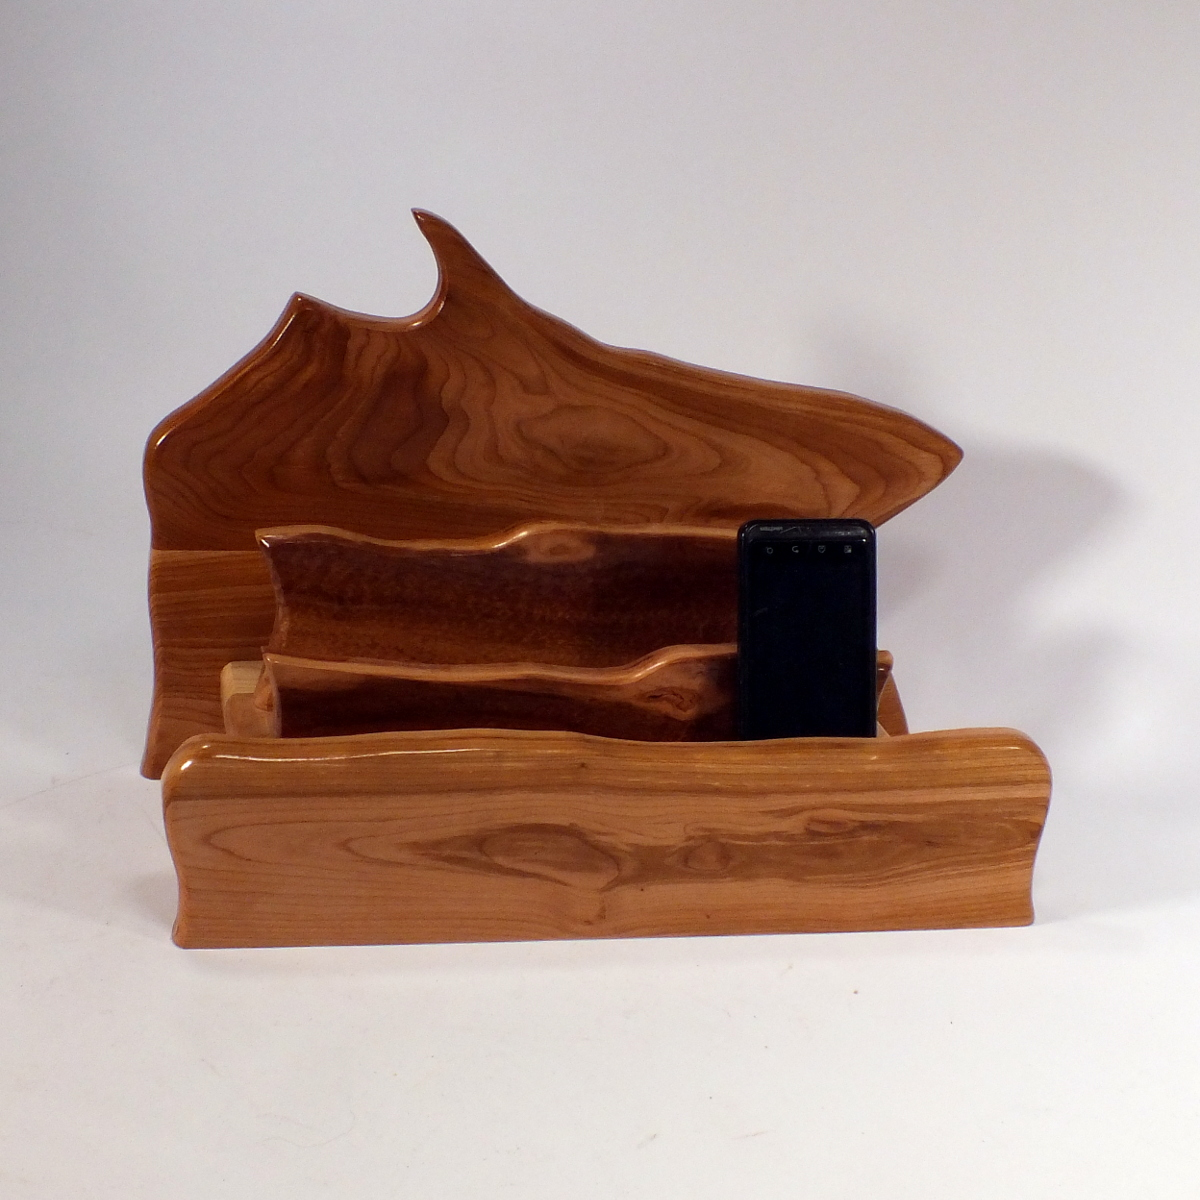 sq front phone WB 2-tb-knotty-ch-semo-1-4-17-charging-station-tech-tamer-woodworks.Jpg